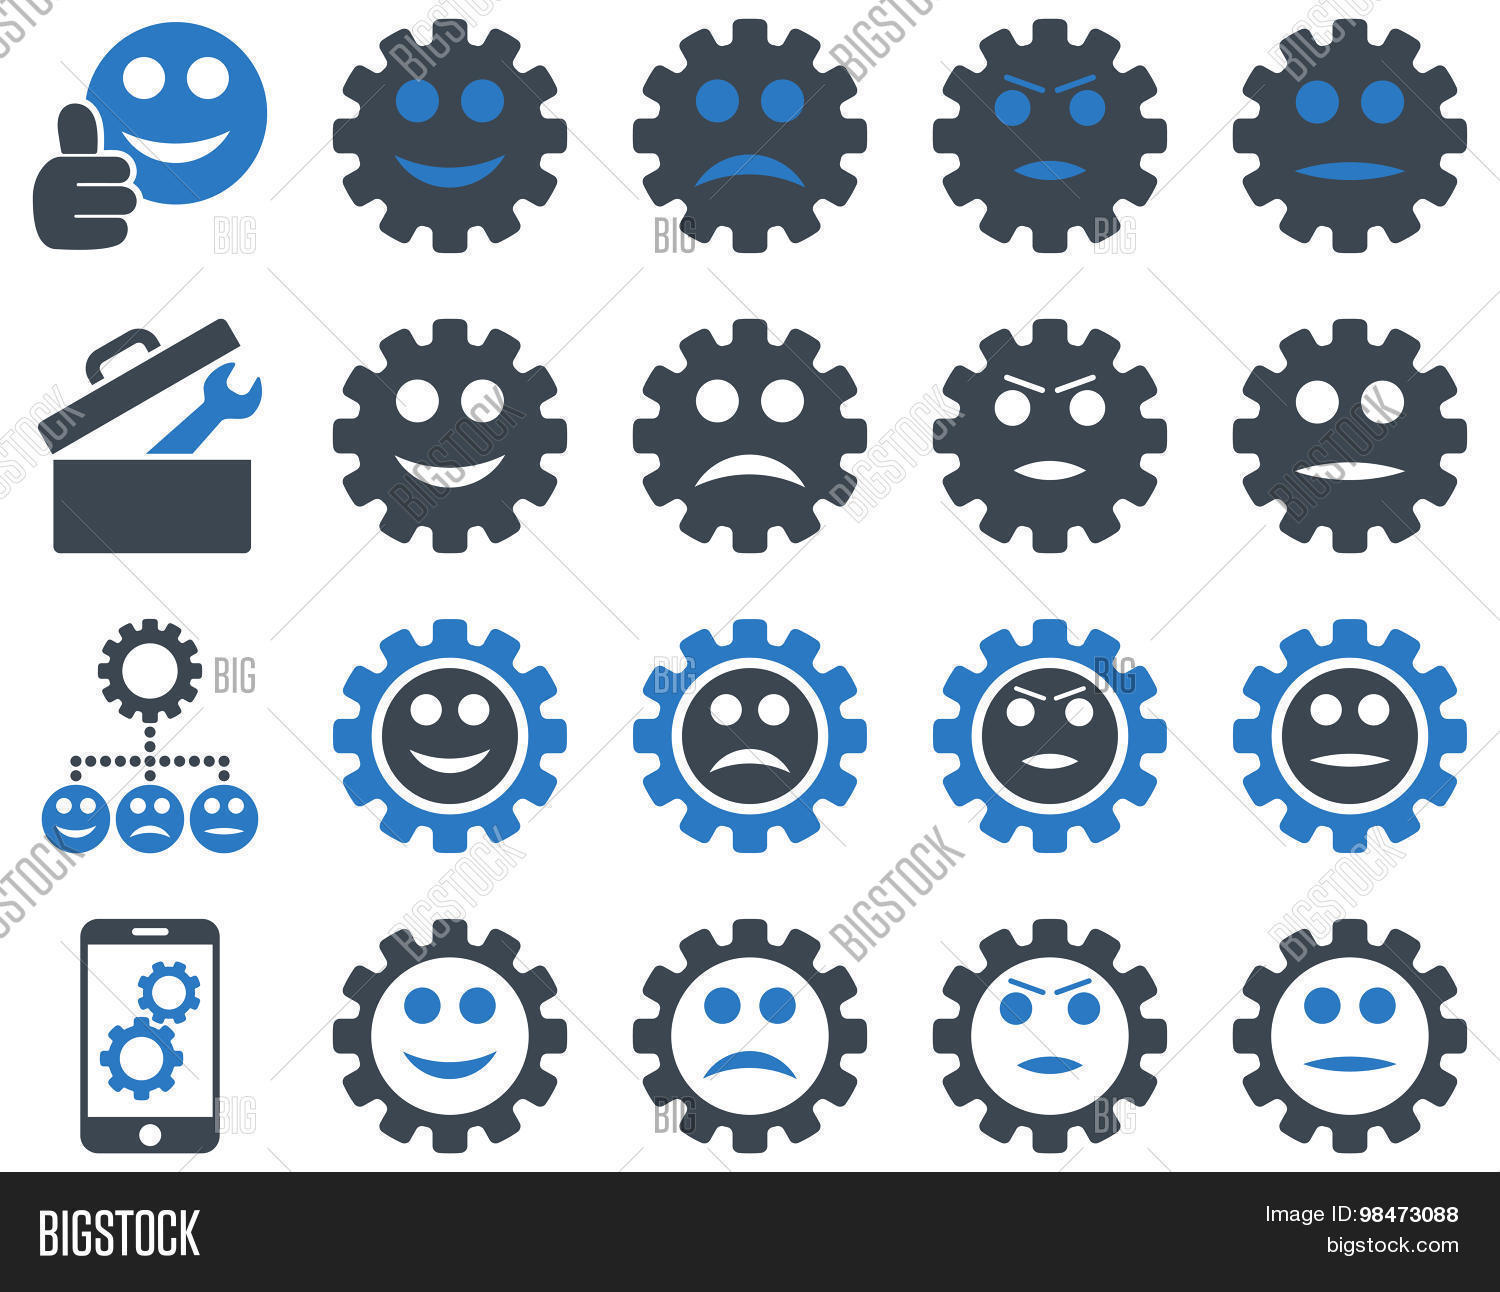 Tools and Smile Gears Icons. Vector set style: bicolor flat images, smooth blue colors, isolated on a white background.